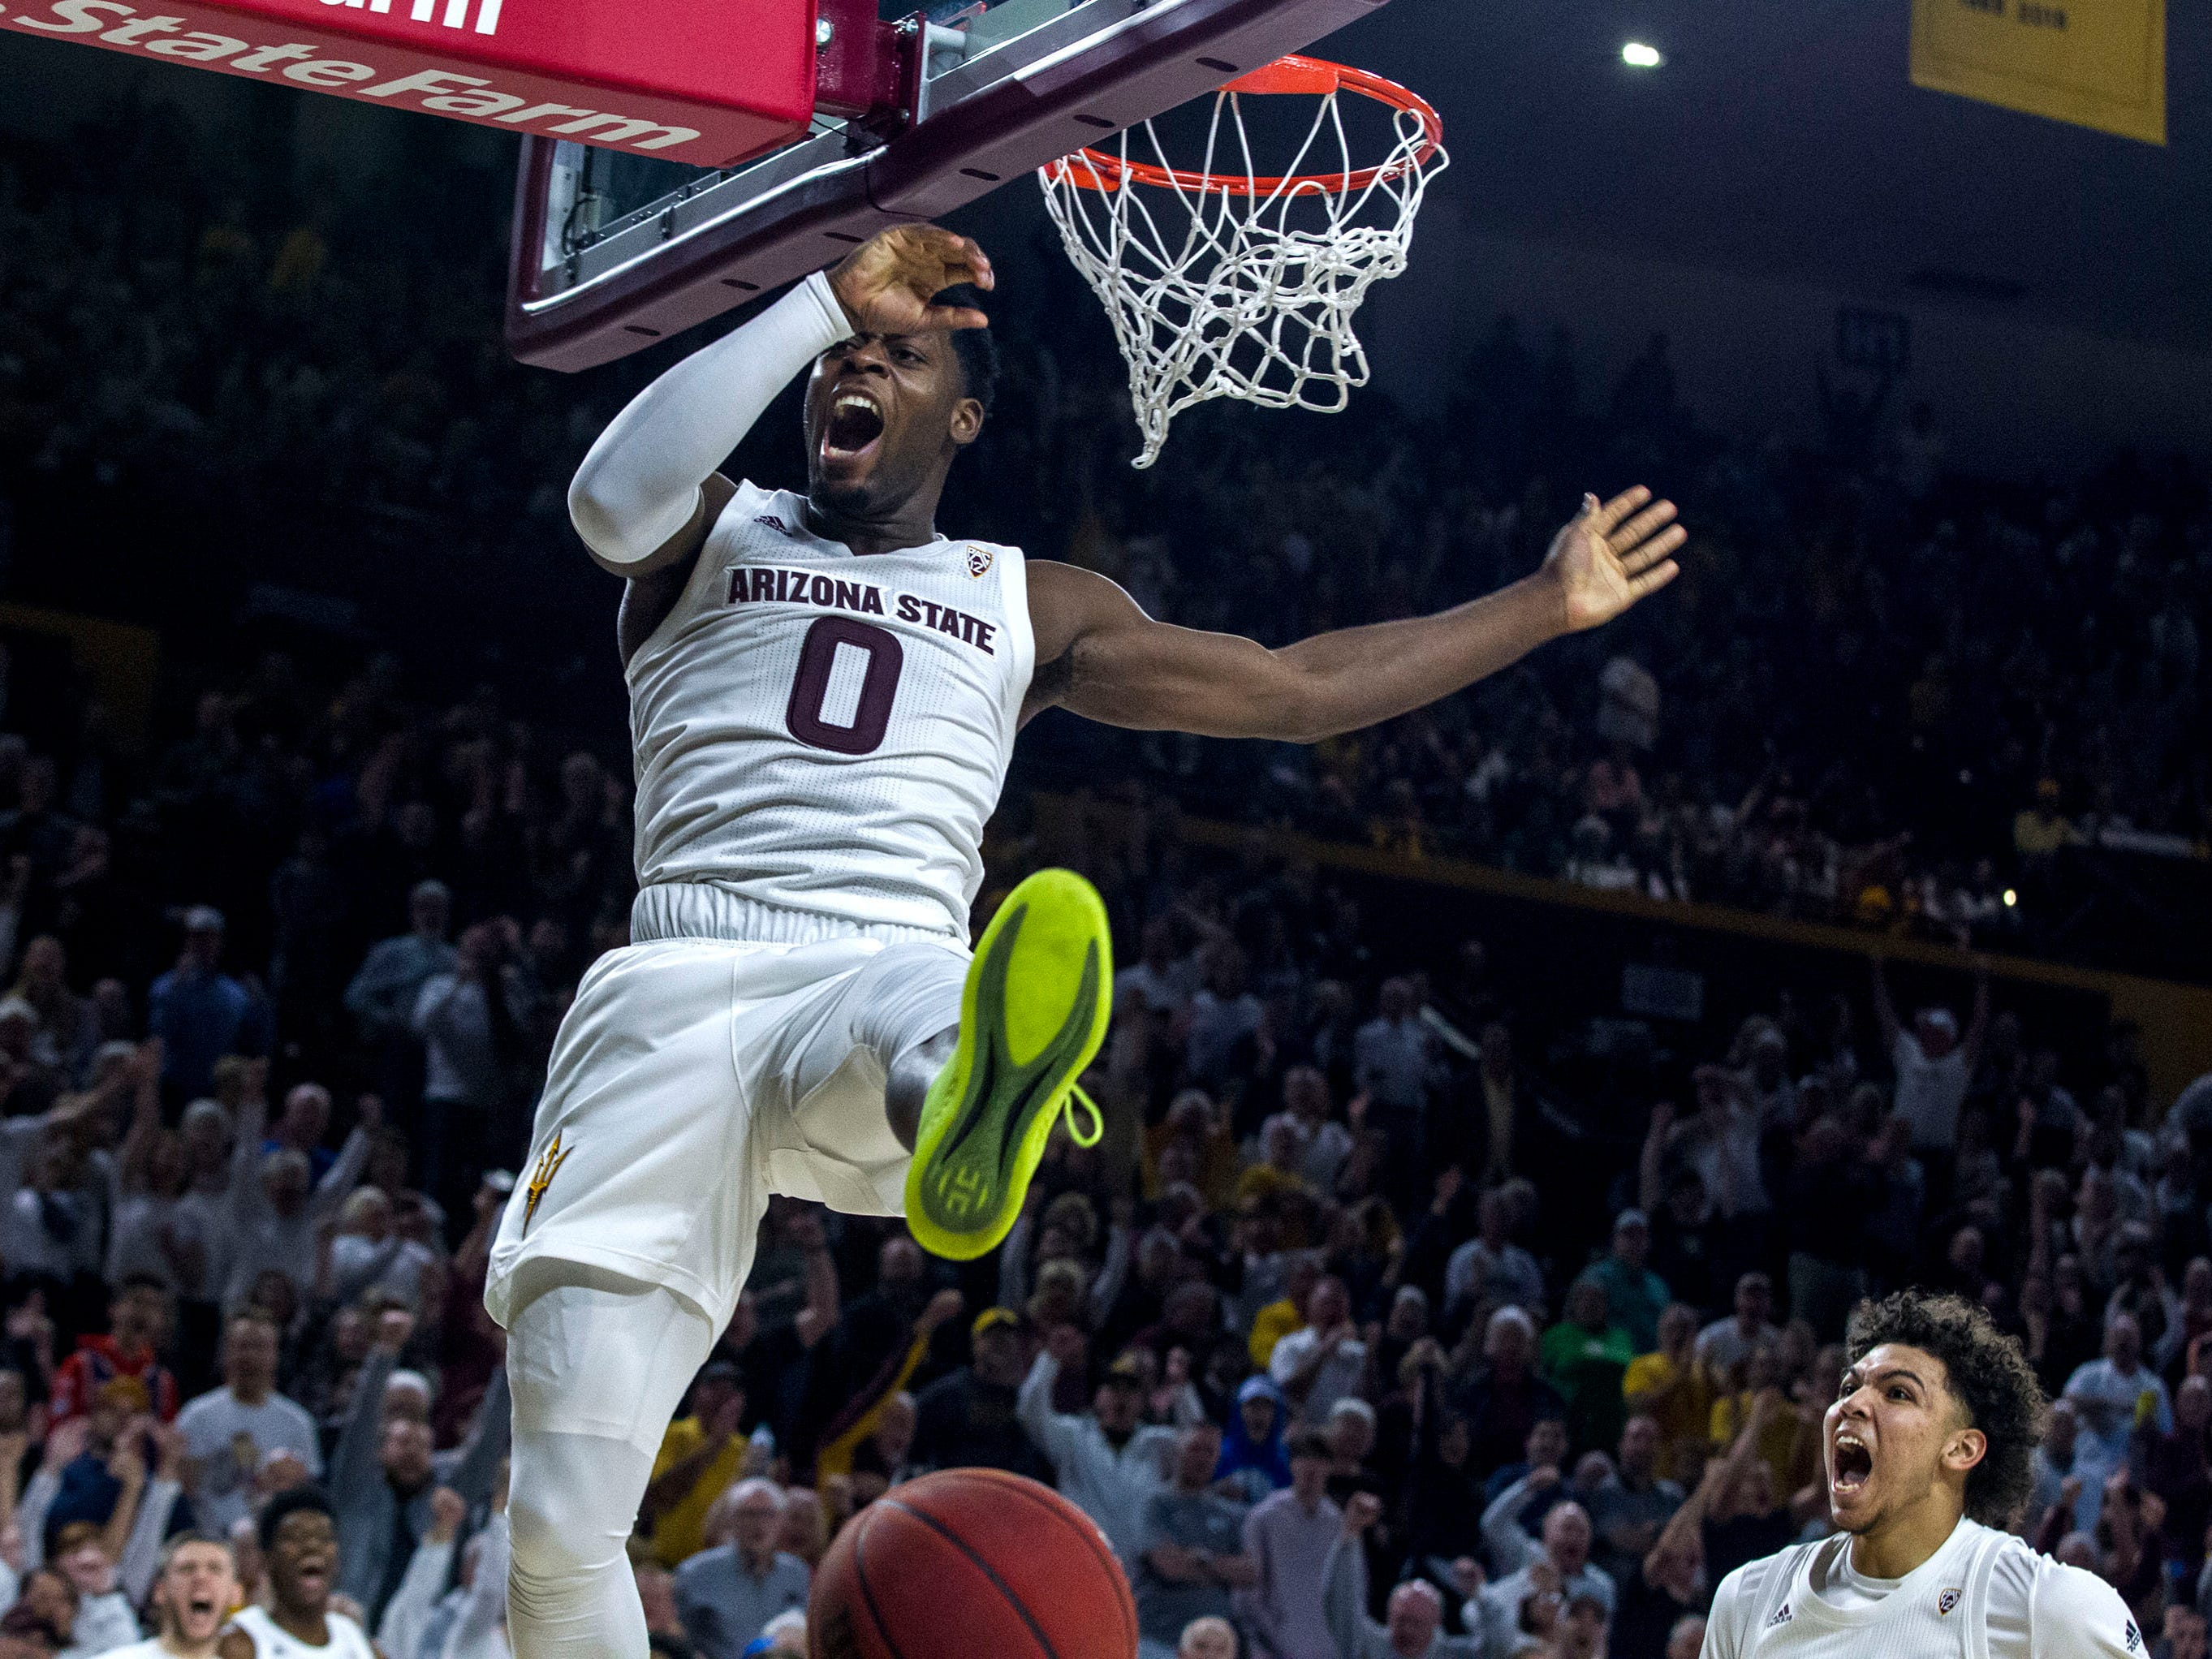 Arizona State's Taeshon Cherry, right, watches Luguentz Dort (0) hollers after a dunk against Oregon during the second half, Saturday, Jan. 19, 2019, in Tempe, Ariz. Arizona State won 78-64. (AP Photo/Darryl Webb)